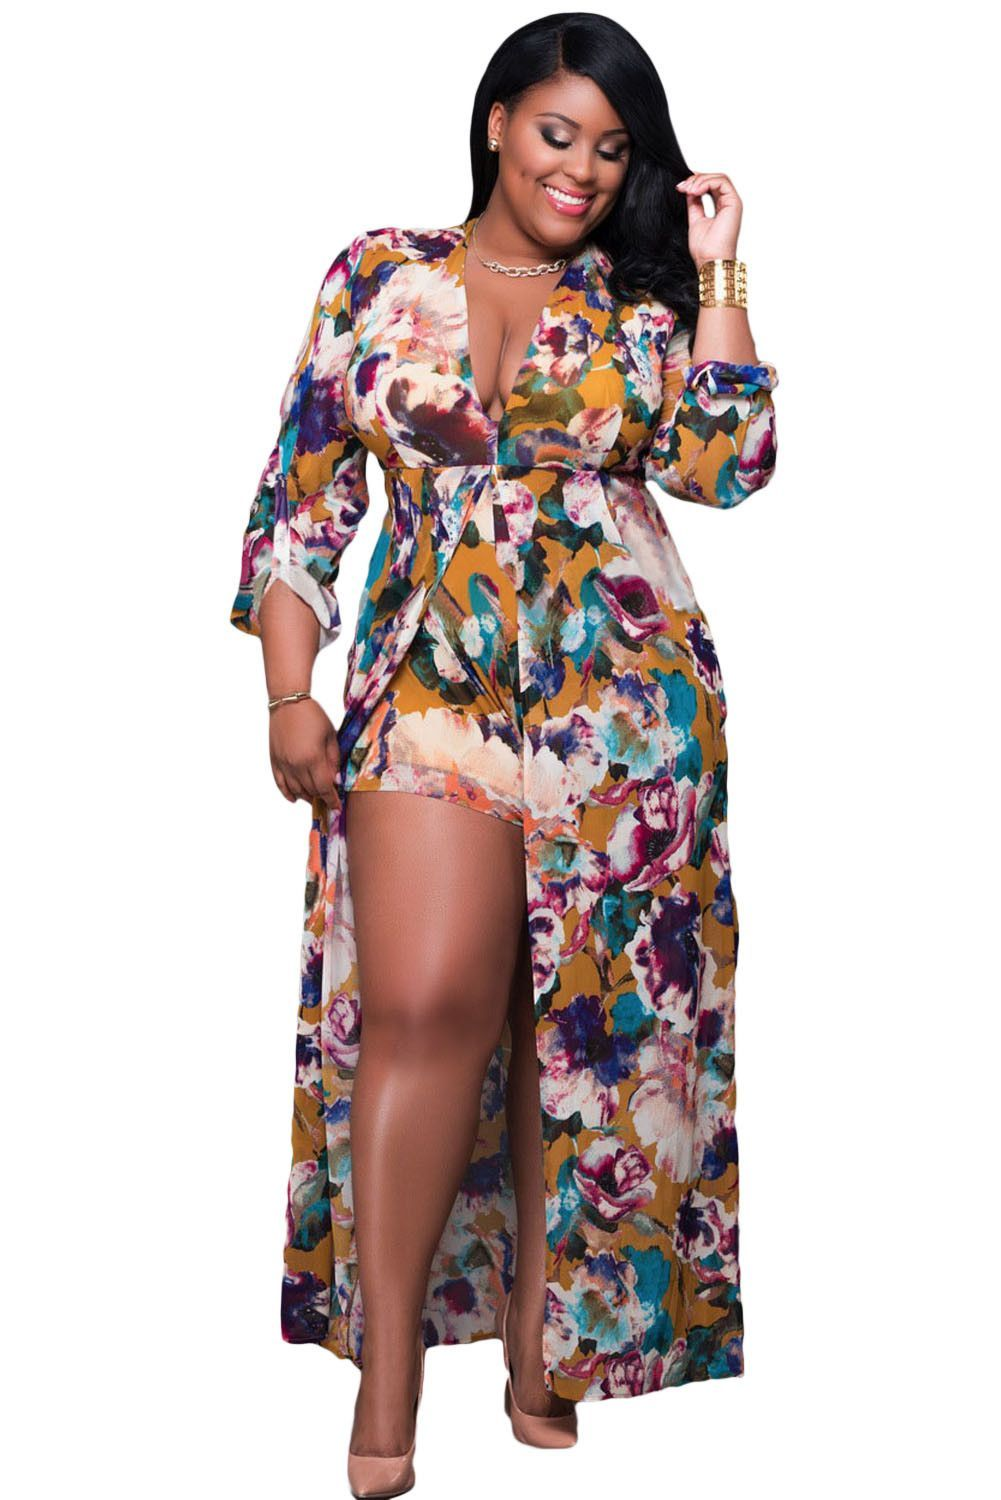 Chicloth plus size sleeved floral romper maxi dress my gorgeous